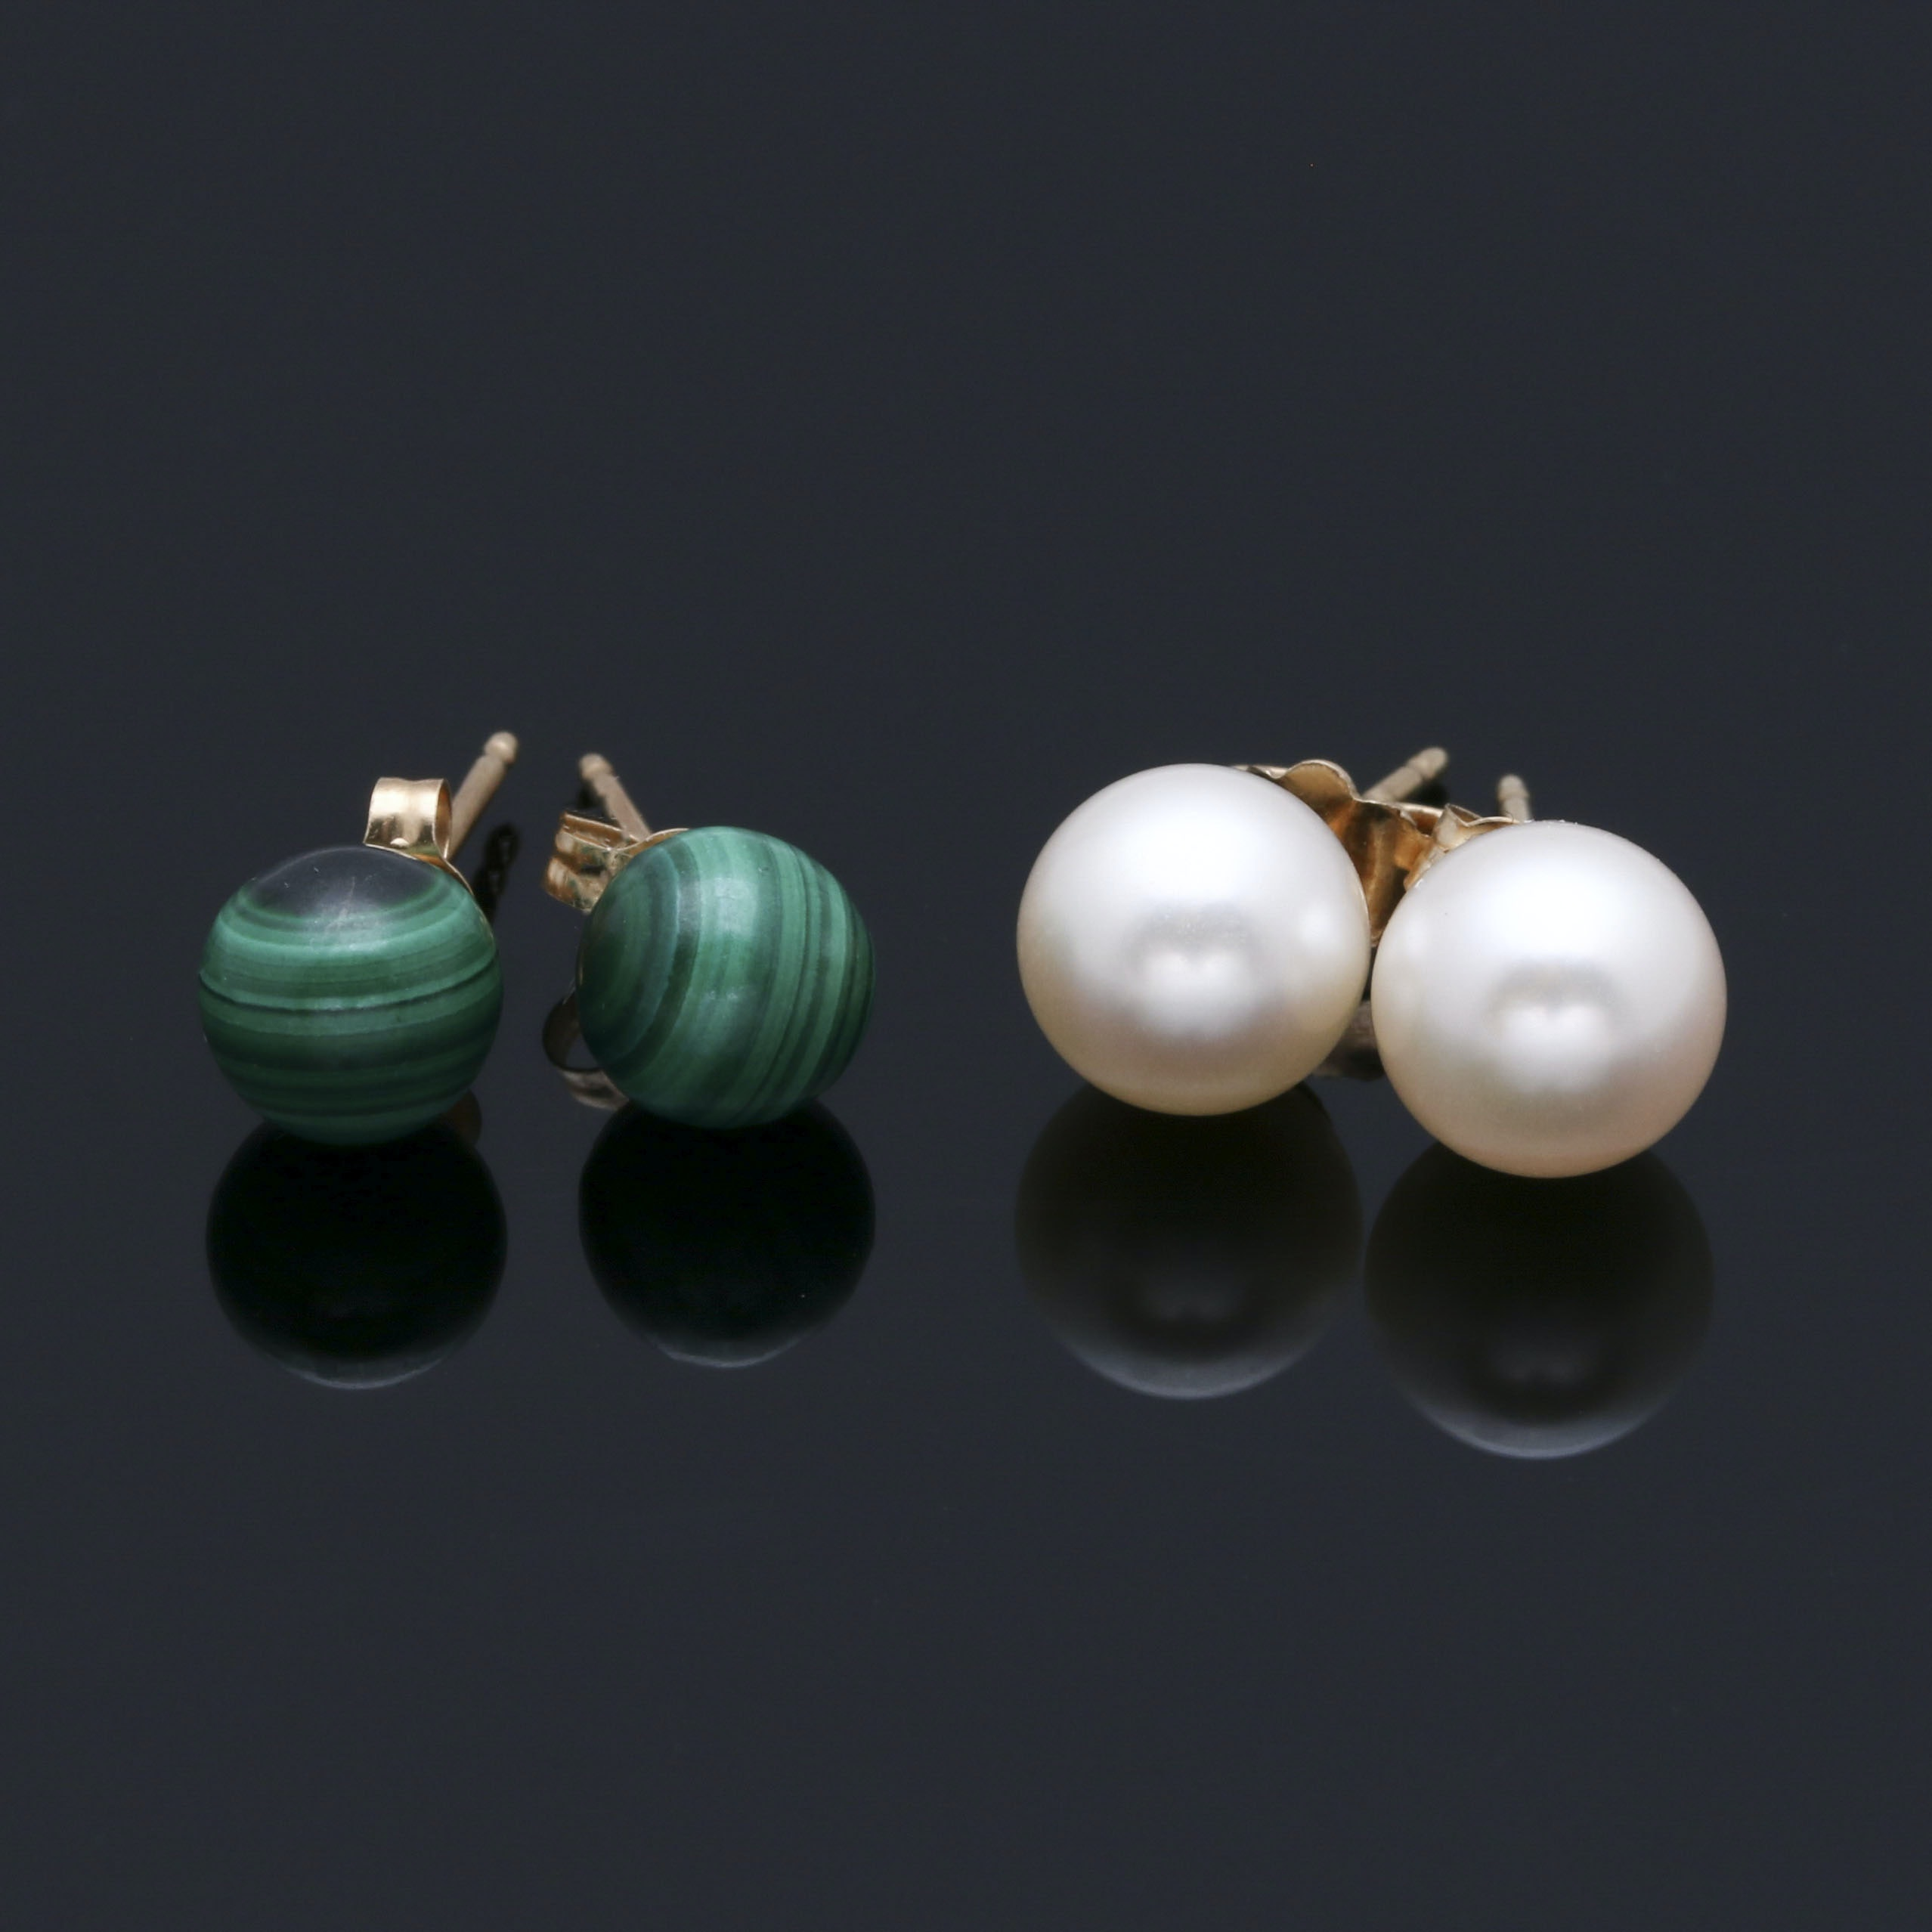 14K Yellow Gold Cultured Pearl and Malachite Stud Earrings